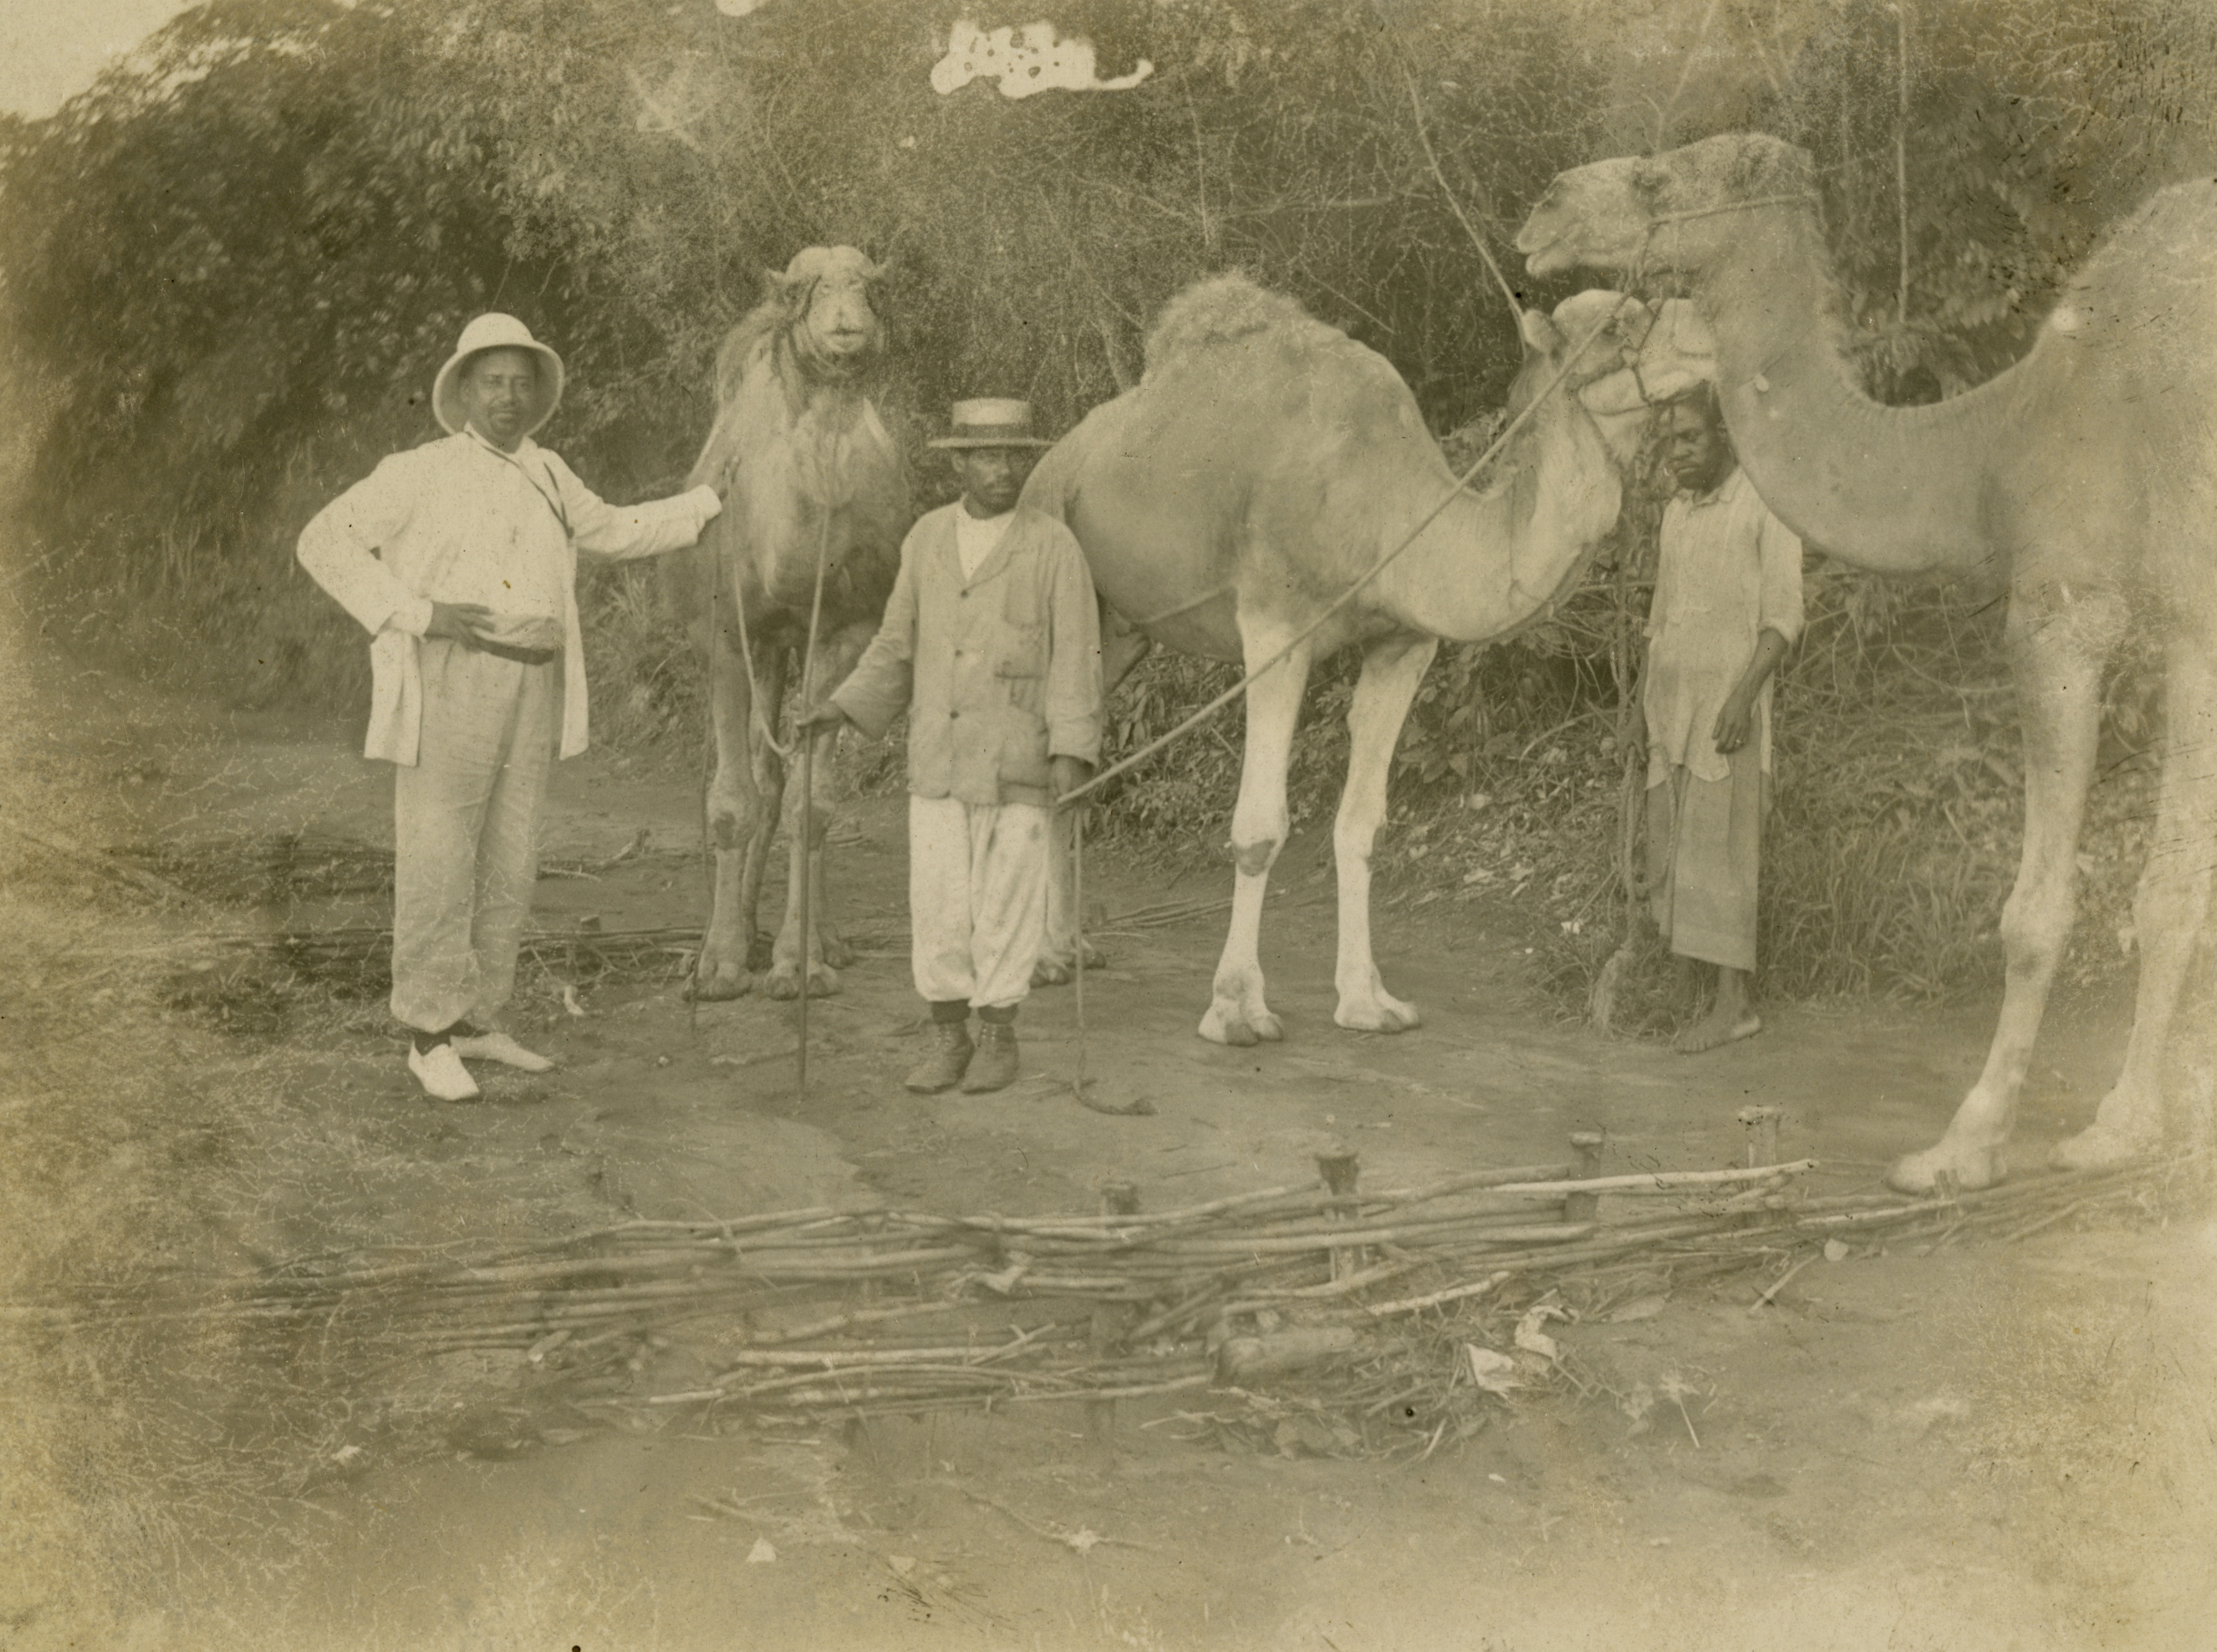 Sheppard, left, with two Congolese men and camels. Photo credit: Presbyterian Historical Society